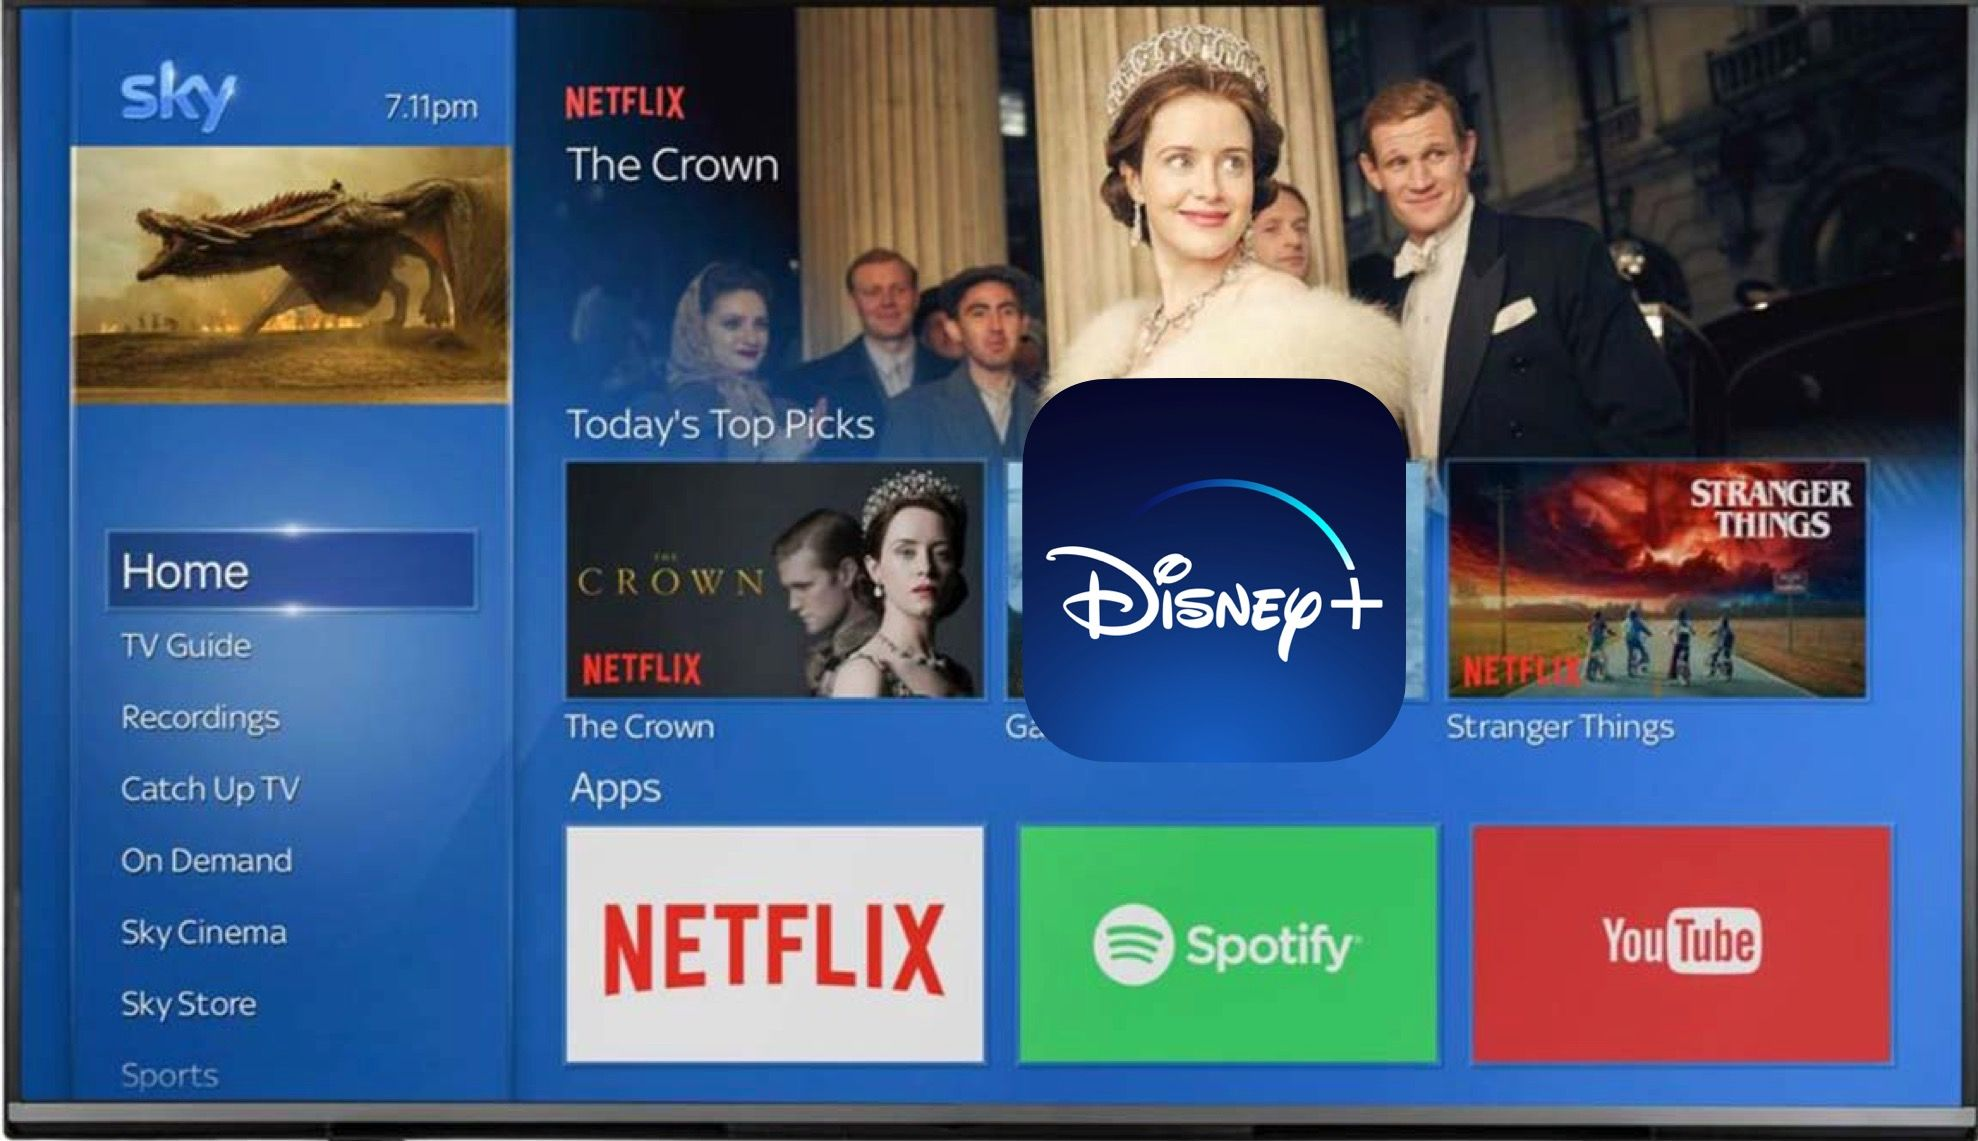 How to SignUp For Disney+ Through Sky and Stream on Sky Q